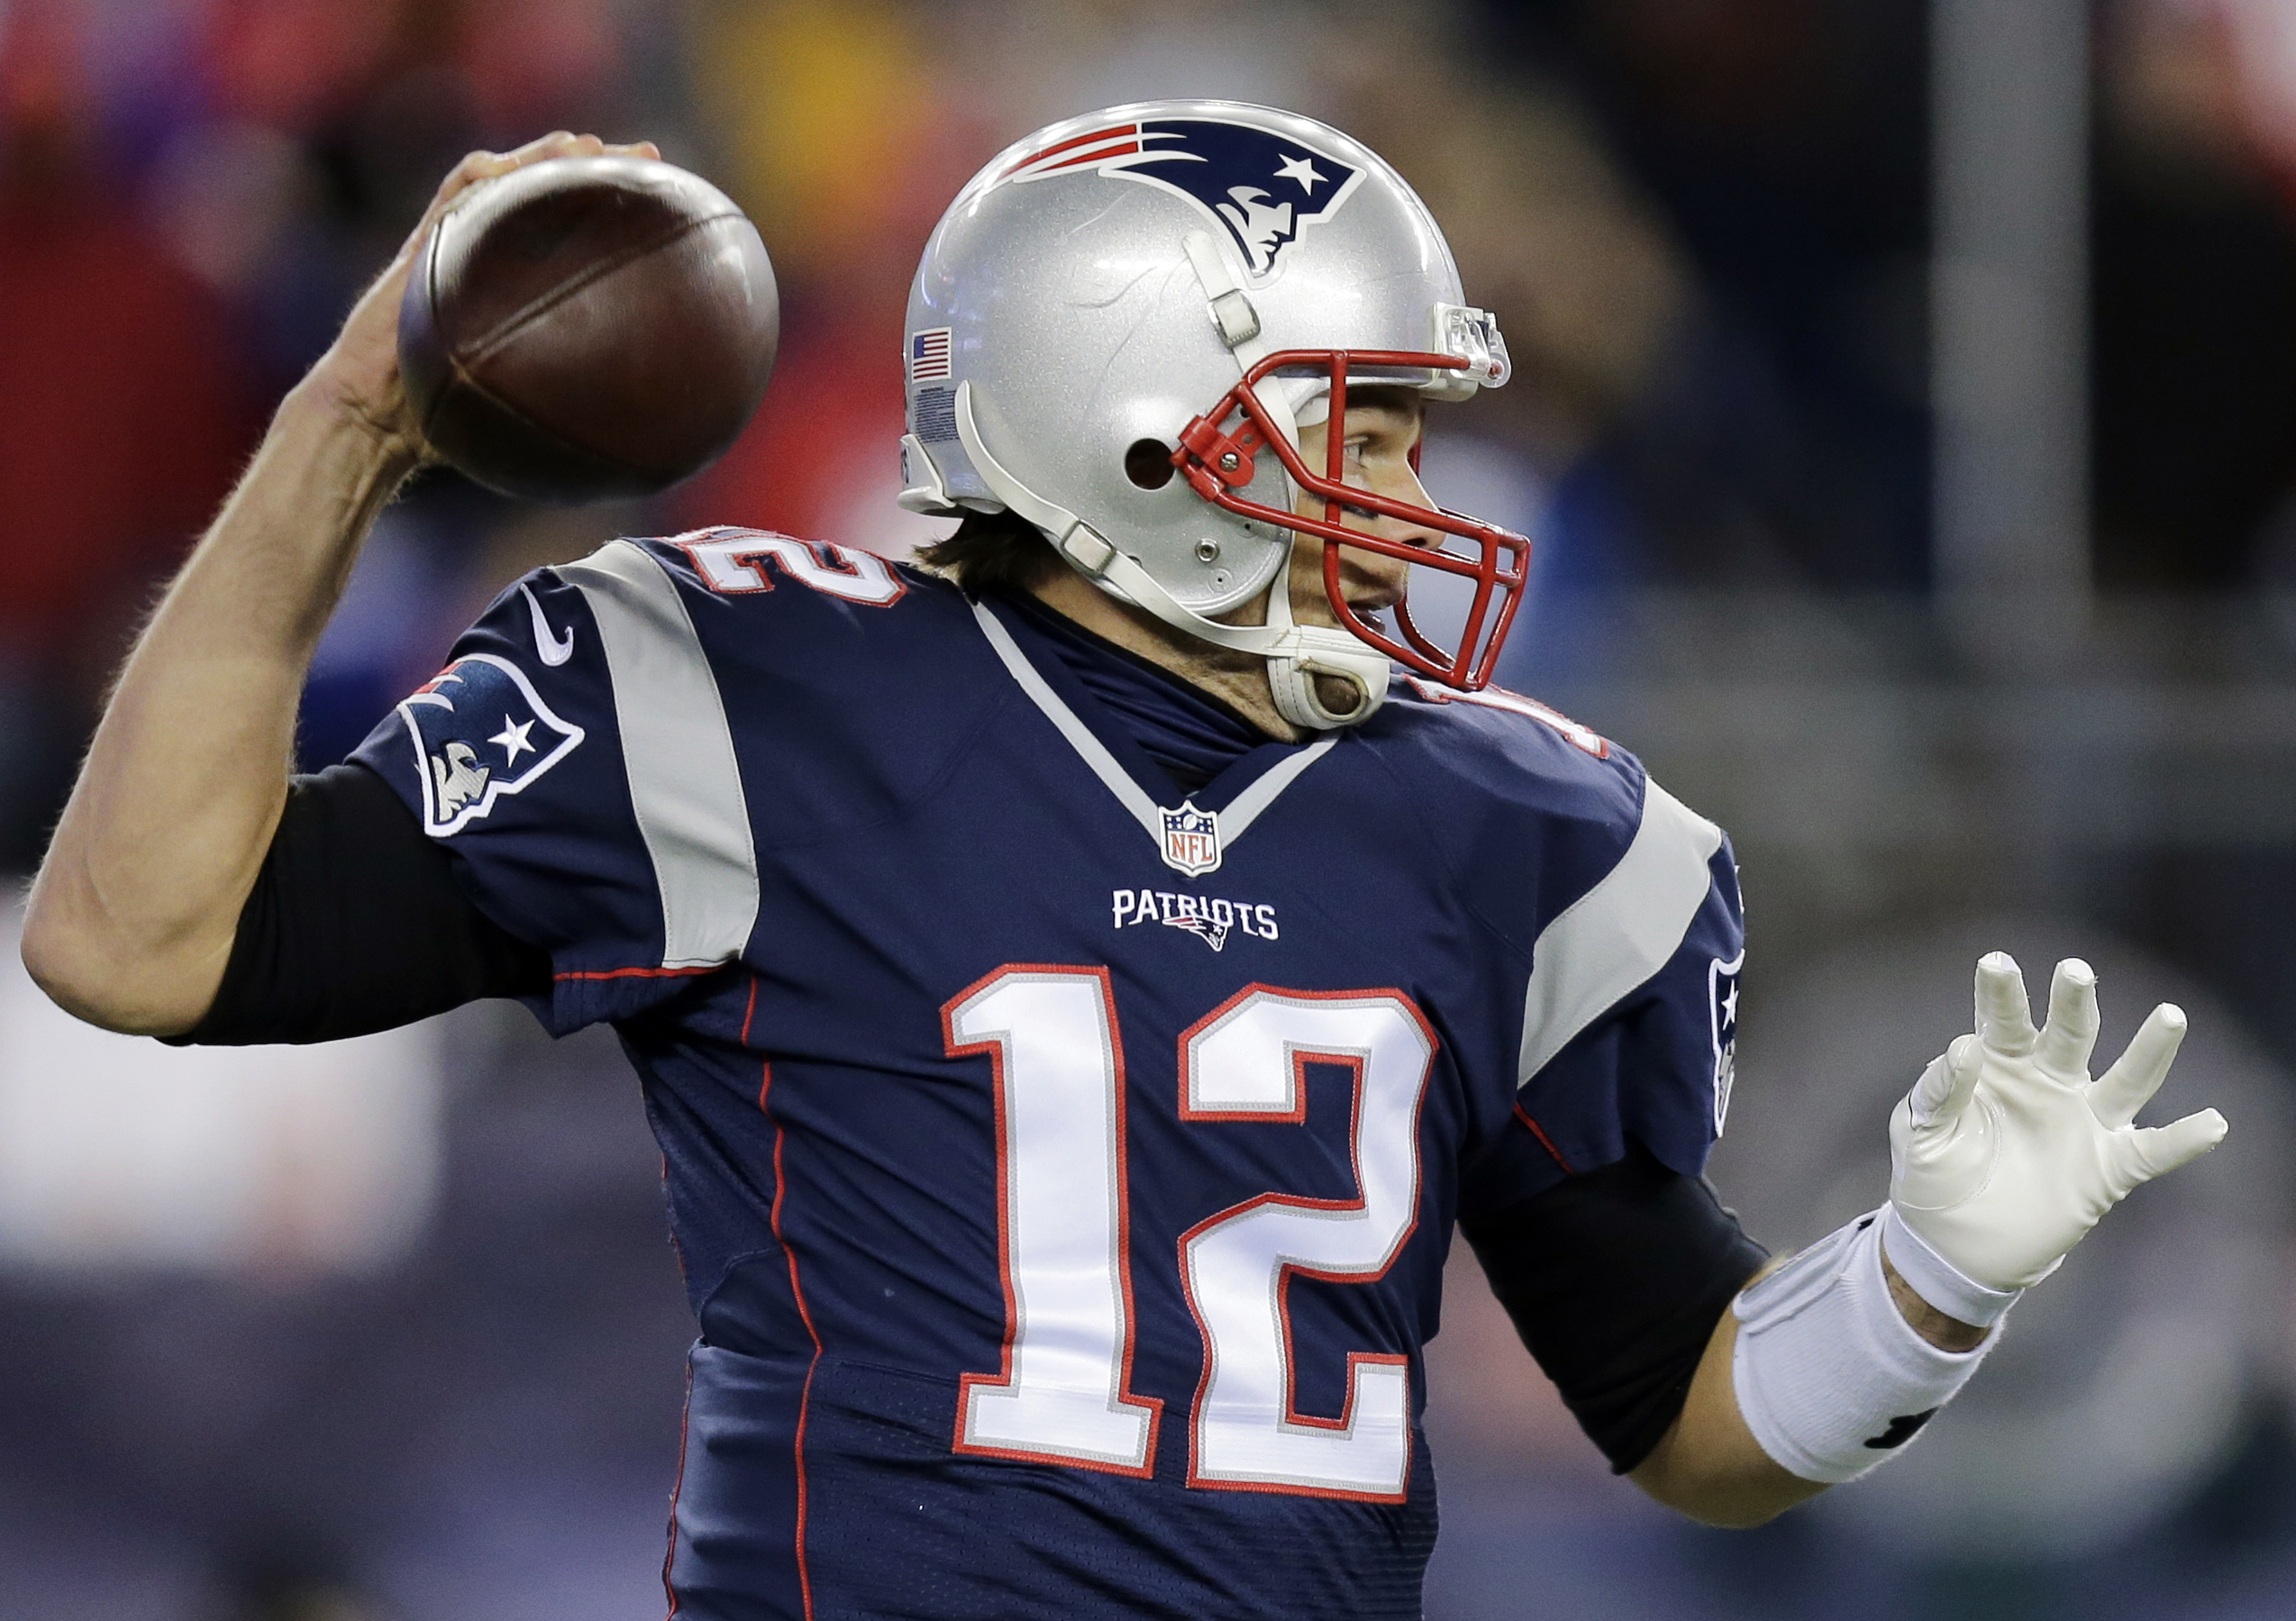 New England Patriots quarterback Tom Brady passes against the Buffalo Bills in the first half of an NFL football game, Monday, Nov. 23, 2015, in Foxborough, Mass. (AP Photo/Charles Krupa)